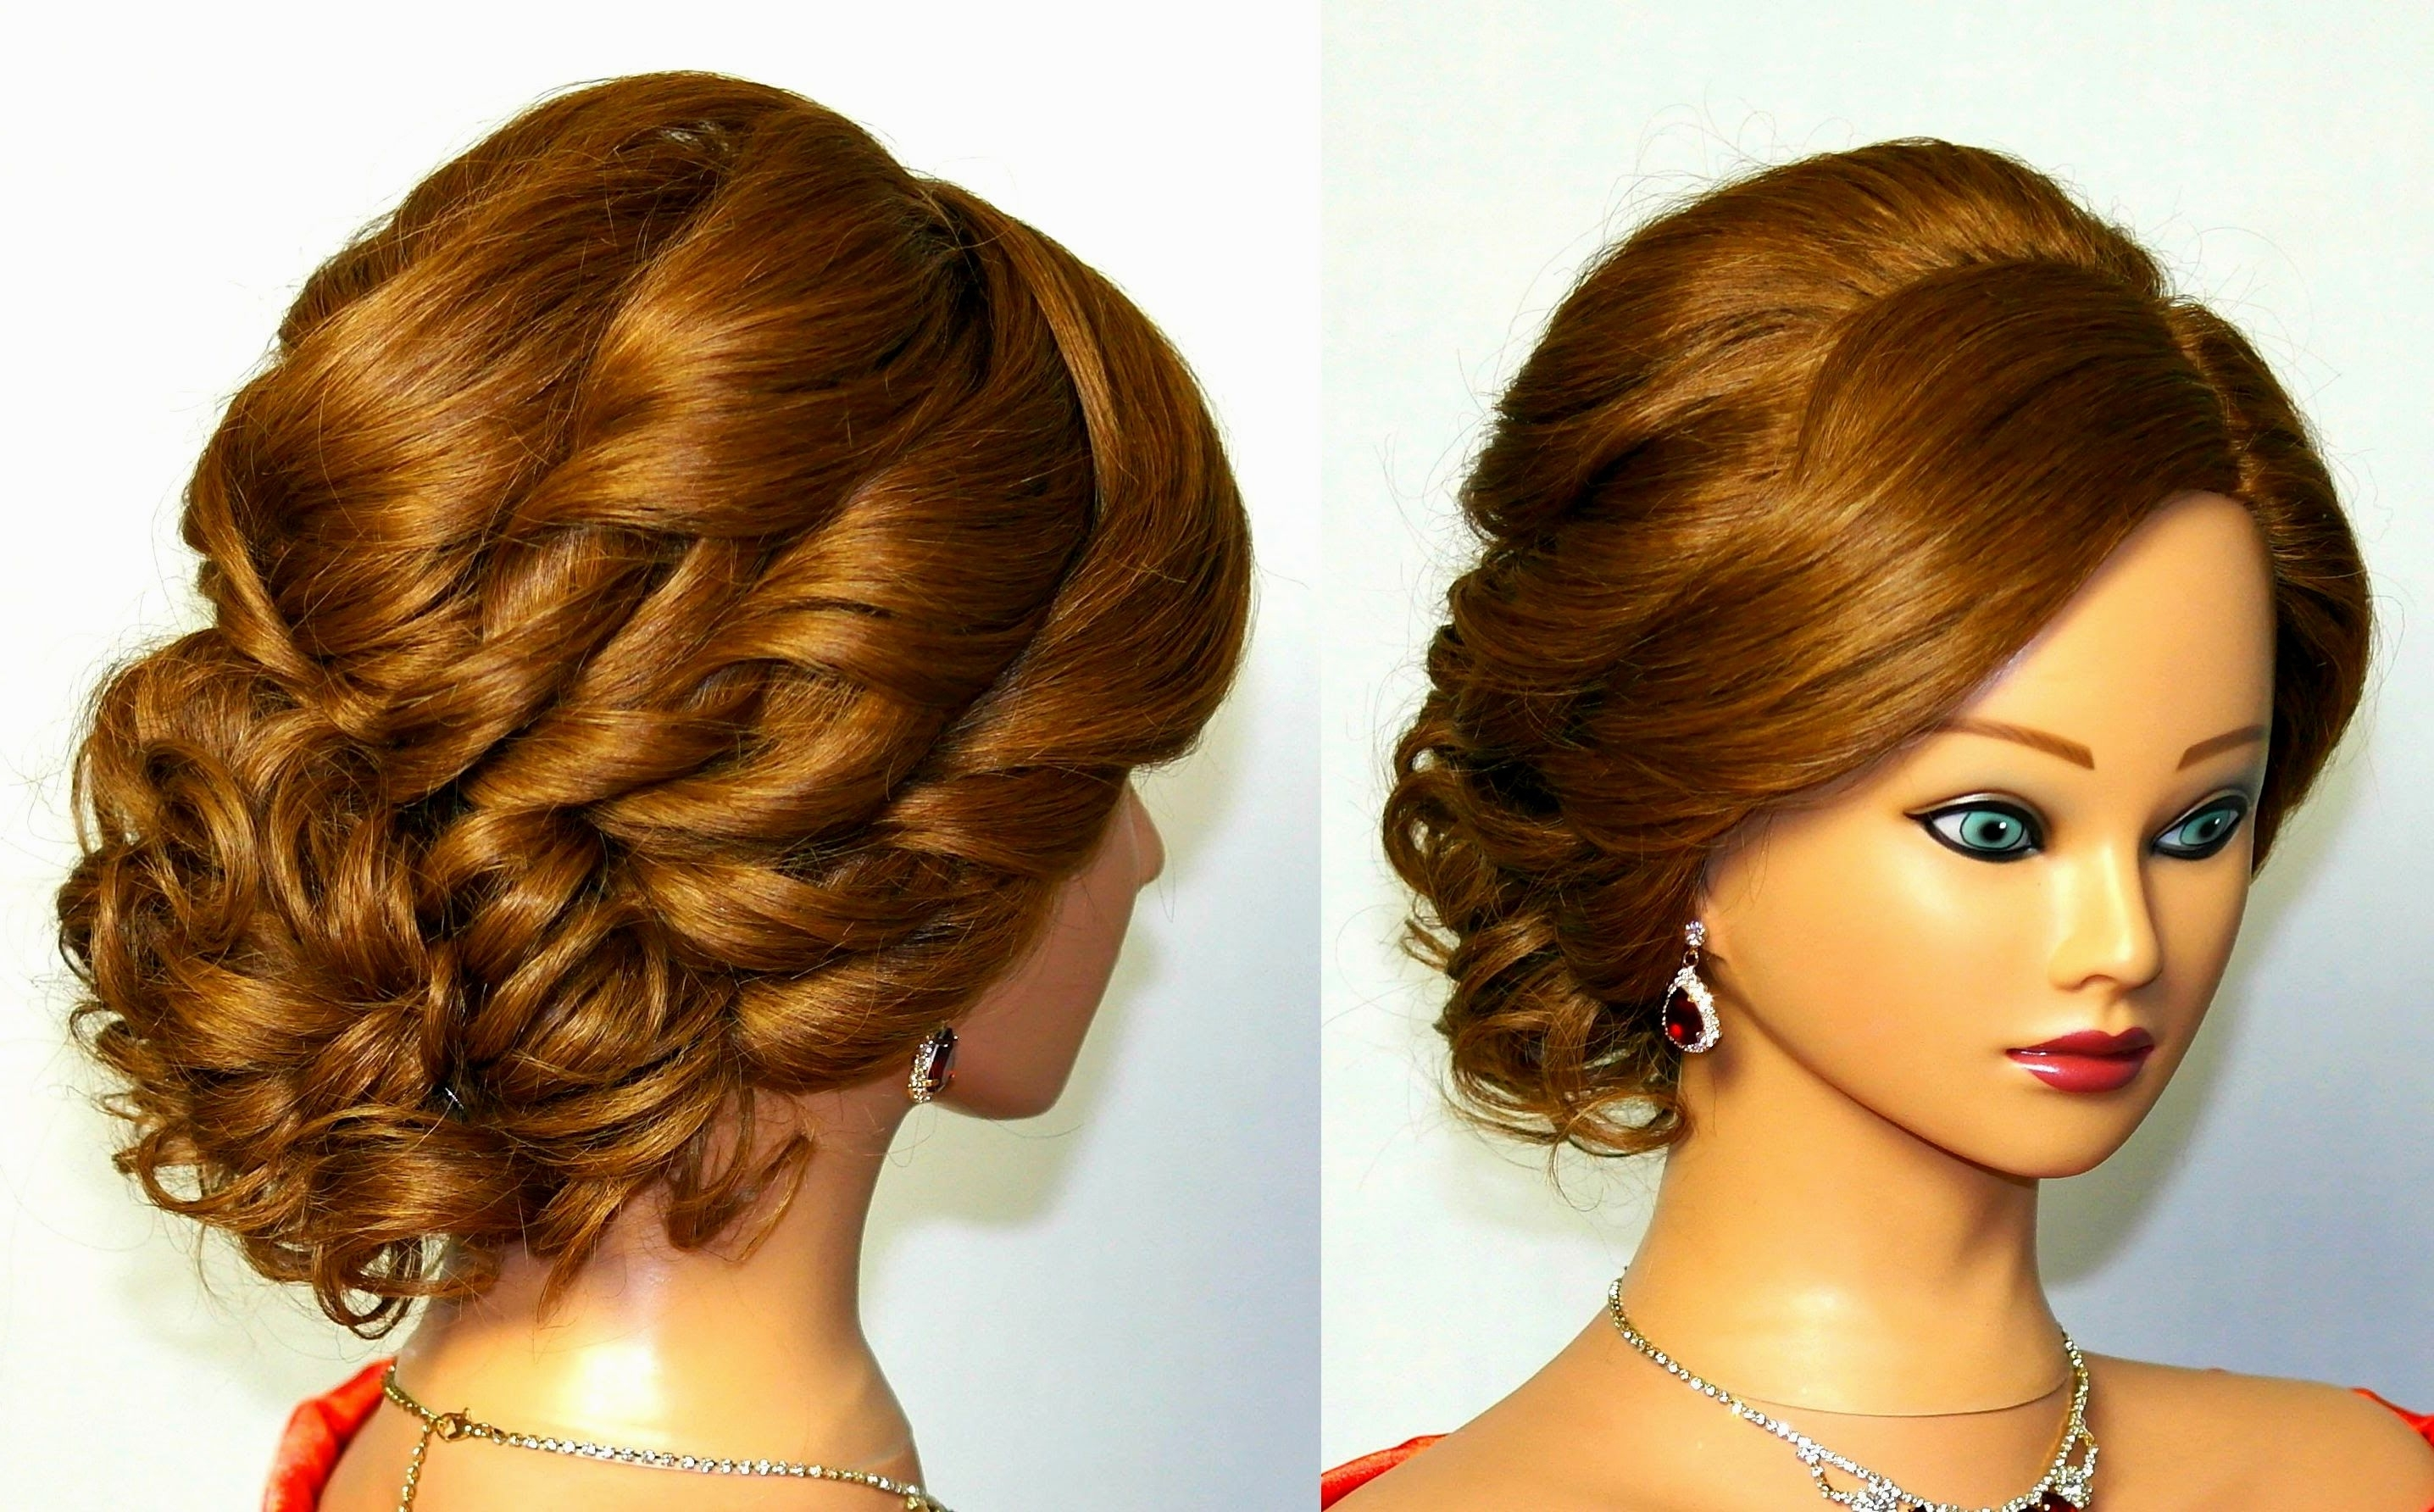 Bridesmaid Hairstyles Curly Hair Updo Hairstyle Pop Ideas Of Curly In Long Curly Hair Updo Hairstyles (View 2 of 15)